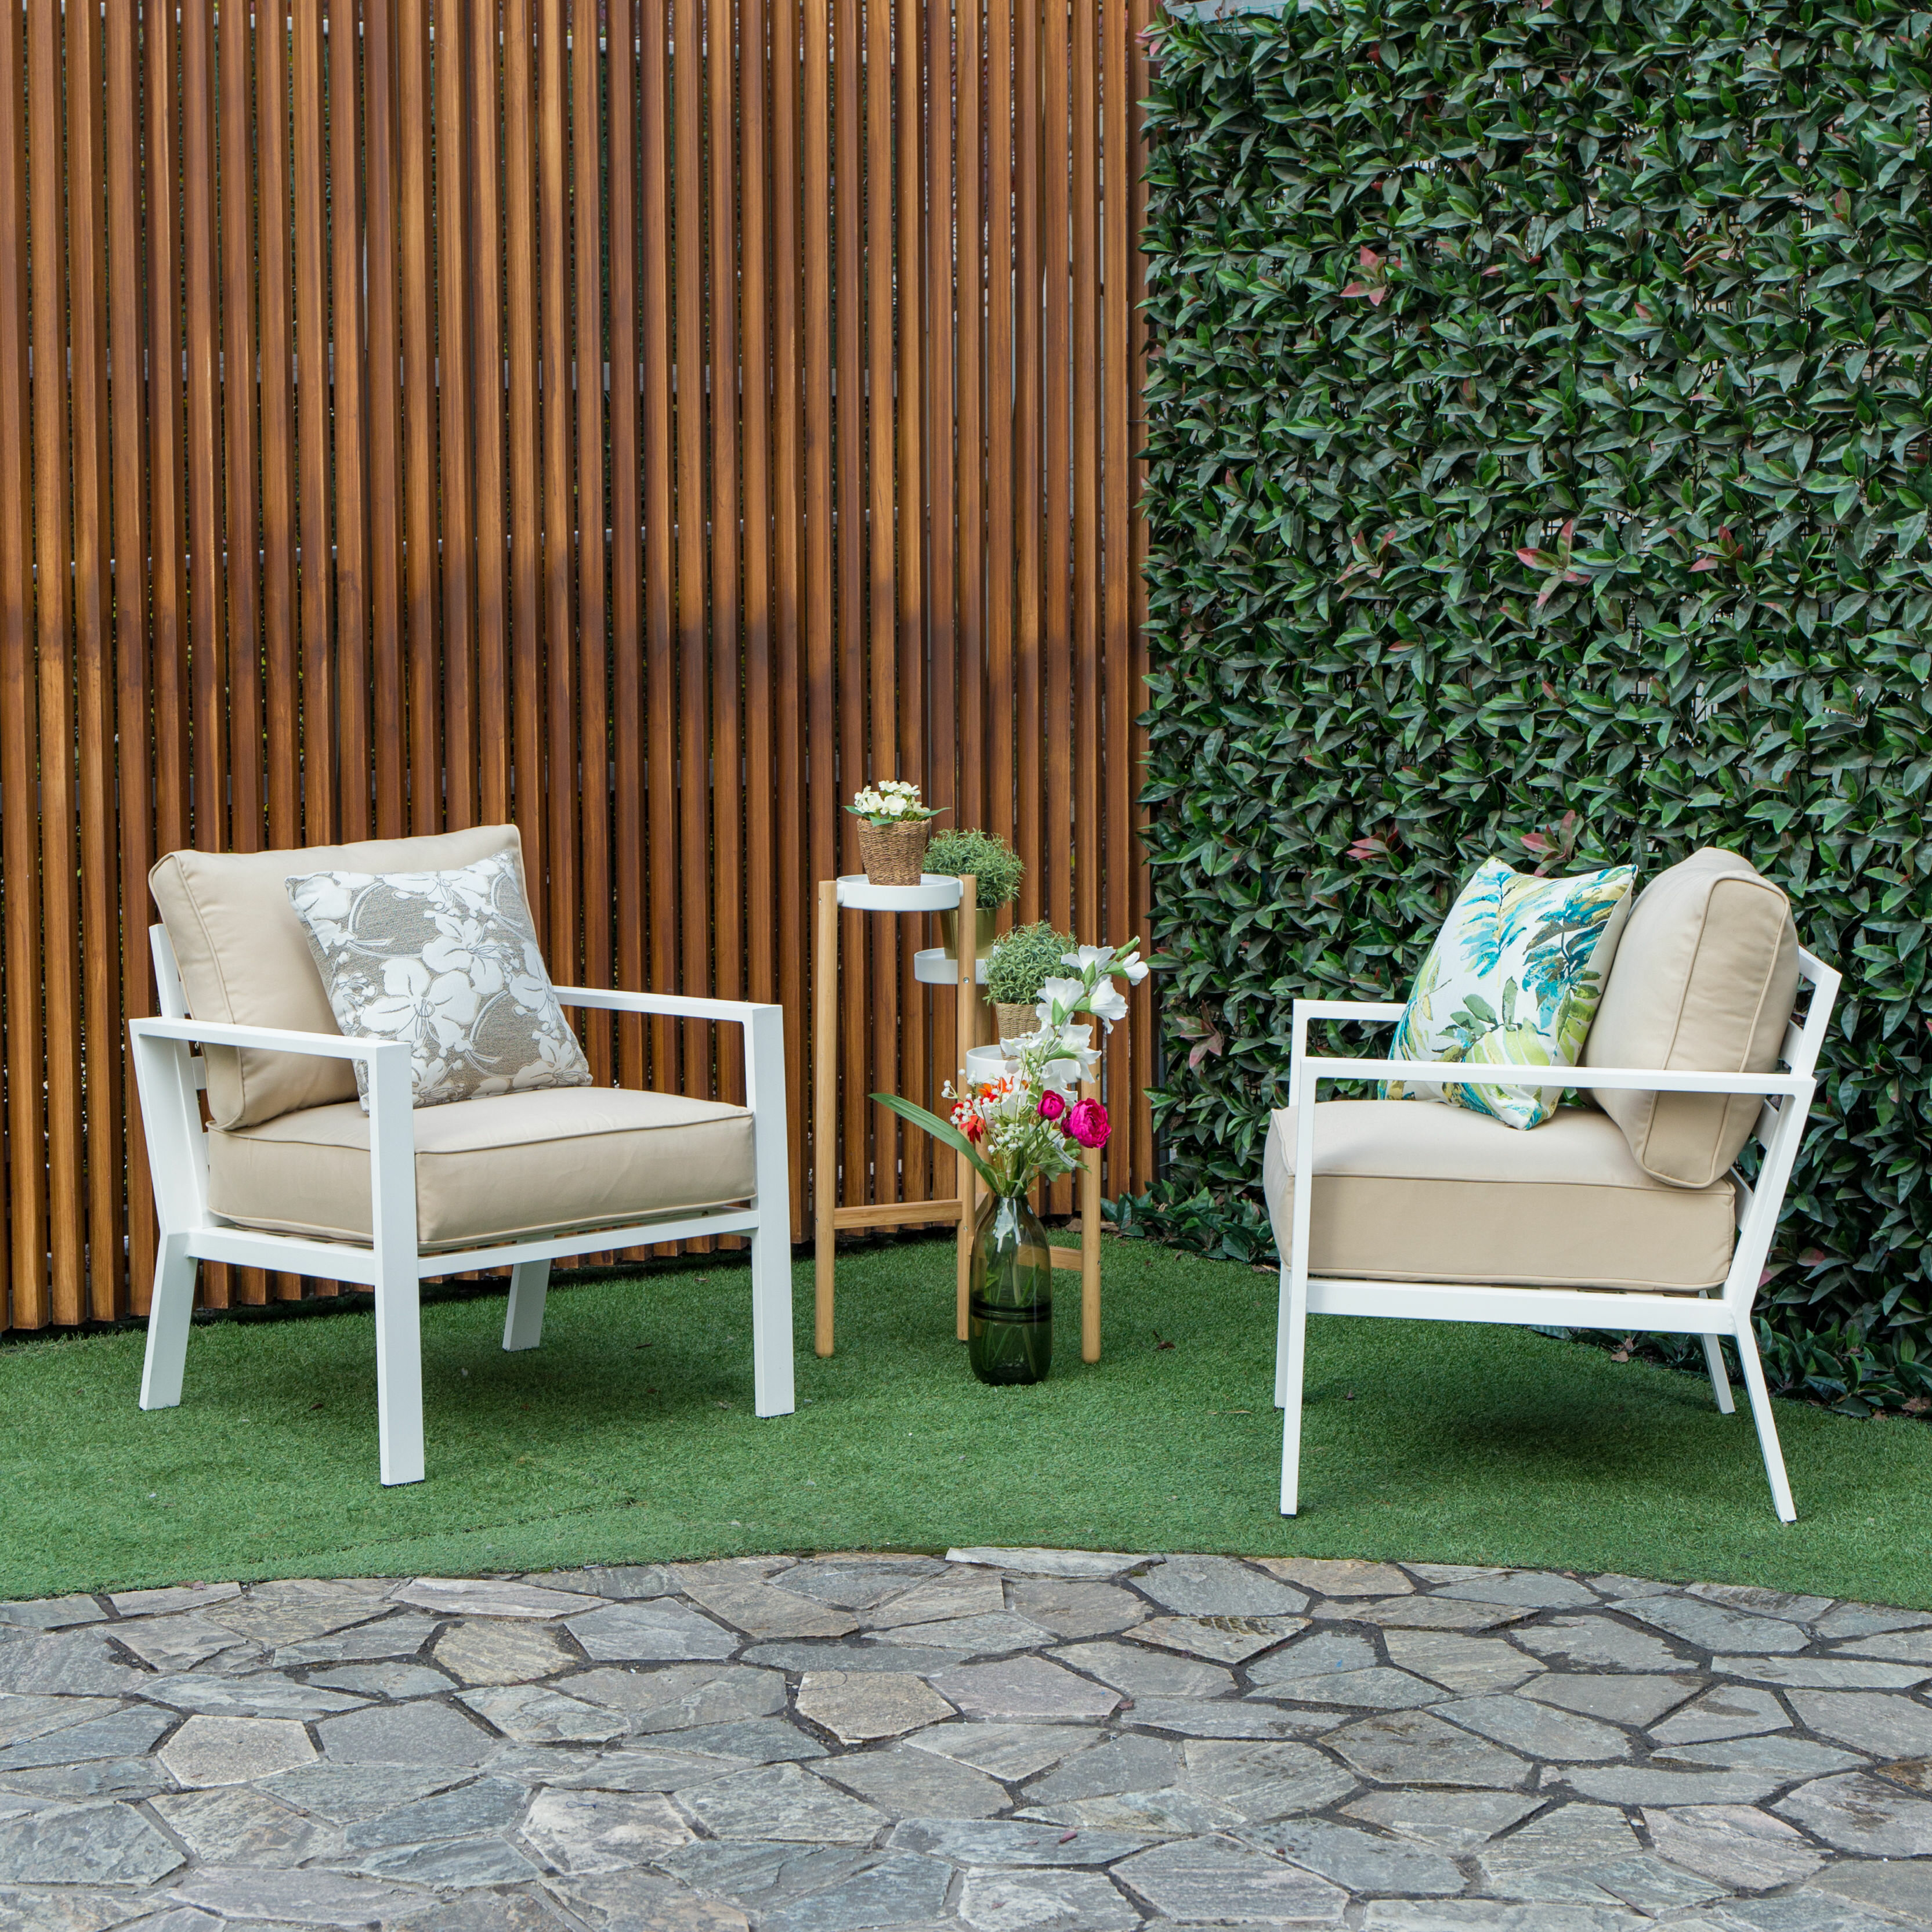 Mccauley outdoor seating group with cushions allmodern